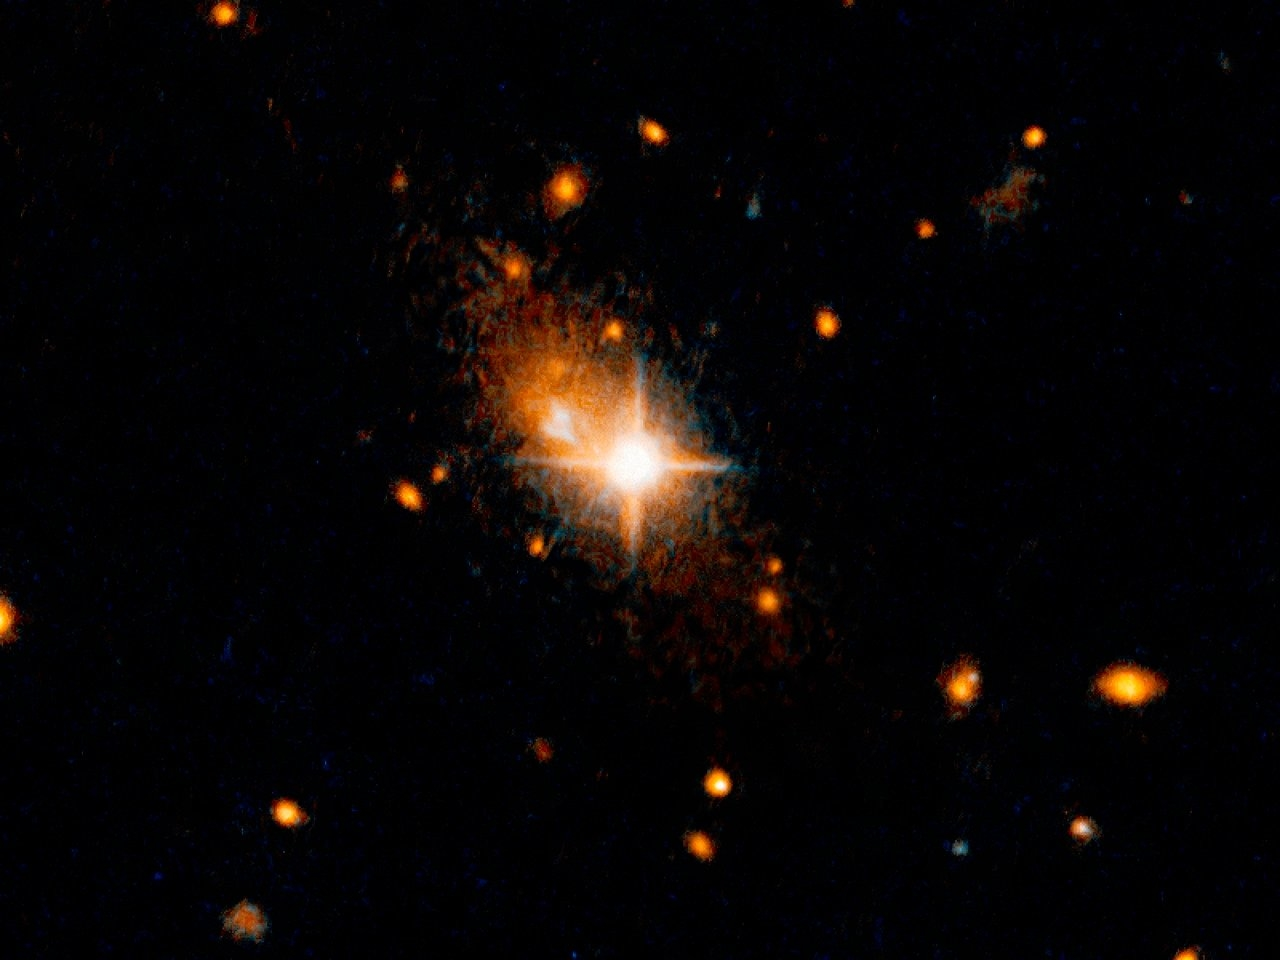 The galaxy 3C186, located about 8 billion years from Earth, is most likely the result of a merger of two galaxies. This is supported by arc-shaped tidal tails, usually produced by a gravitational tug between two colliding galaxies, identified by the scientists. The merger of the galaxies also led to a merger of the two supermassive black holes in their centres, and the resultant black hole was then kicked out of its parent galaxy by the gravitational waves created by the merger. The bright, star-like looking quasar can be seen in the centre of the image. Its former host galaxy is the faint, extended object behind it.